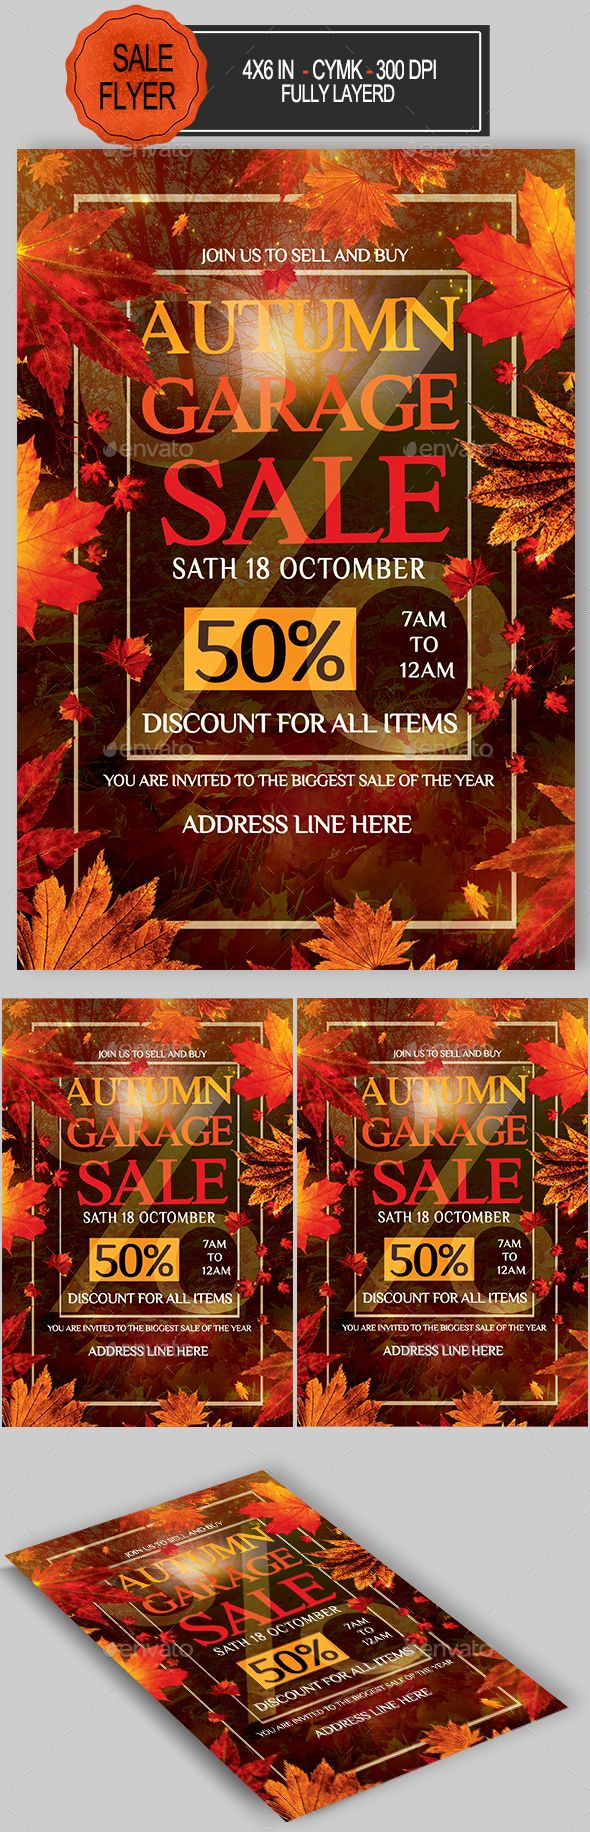 Autumn Garage Sale Flyer  Psd Template  Only Available Here